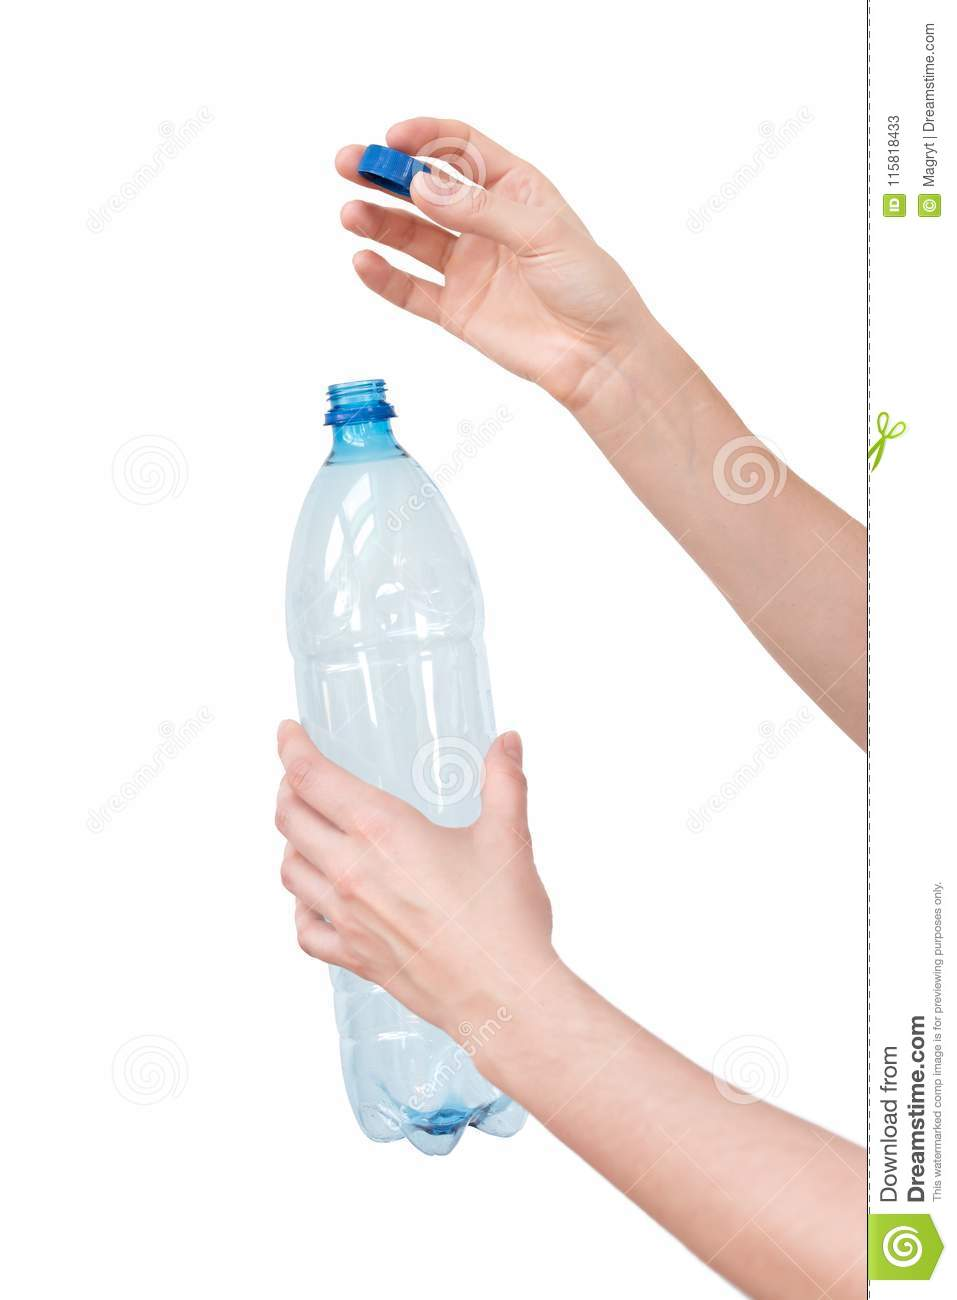 Female hands holding empty plastic bottle isolated on white. Recyclable waste. Recycling, reuse, garbage disposal